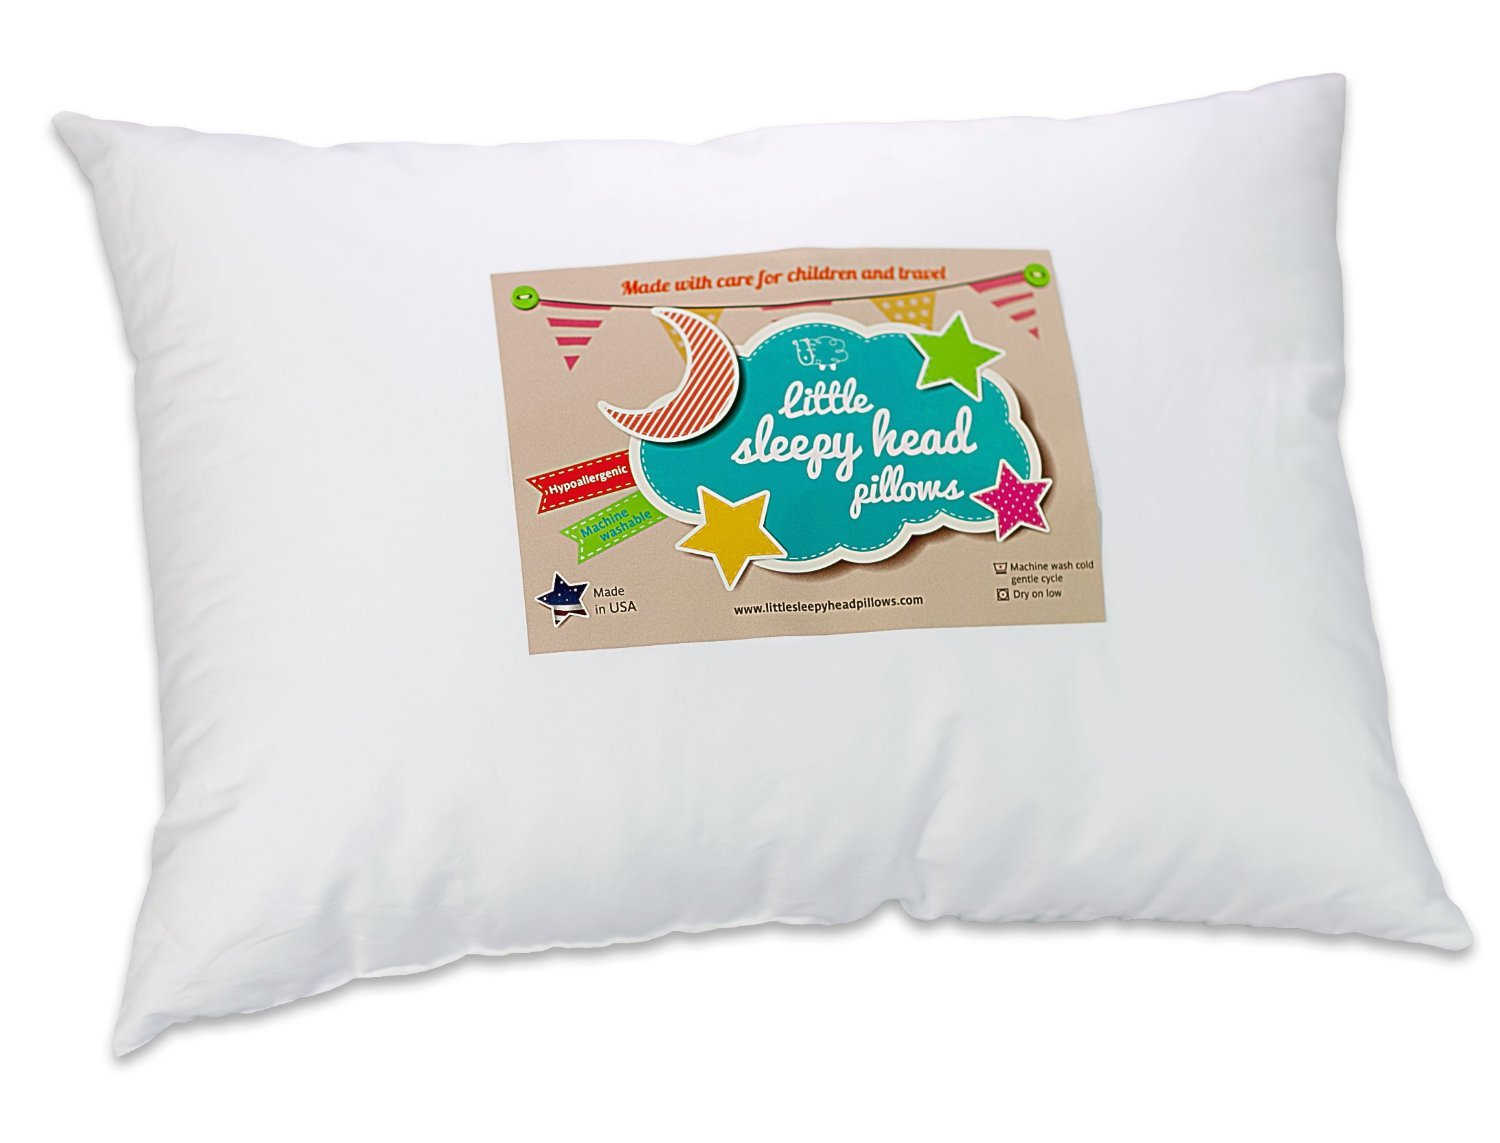 toddler pillow  soft hypoallergenic  best pillows for kids  - toddler pillow  soft hypoallergenic  best pillows for kids better necksupport and sleeping they will take a better nap in bed a crib or evenon the